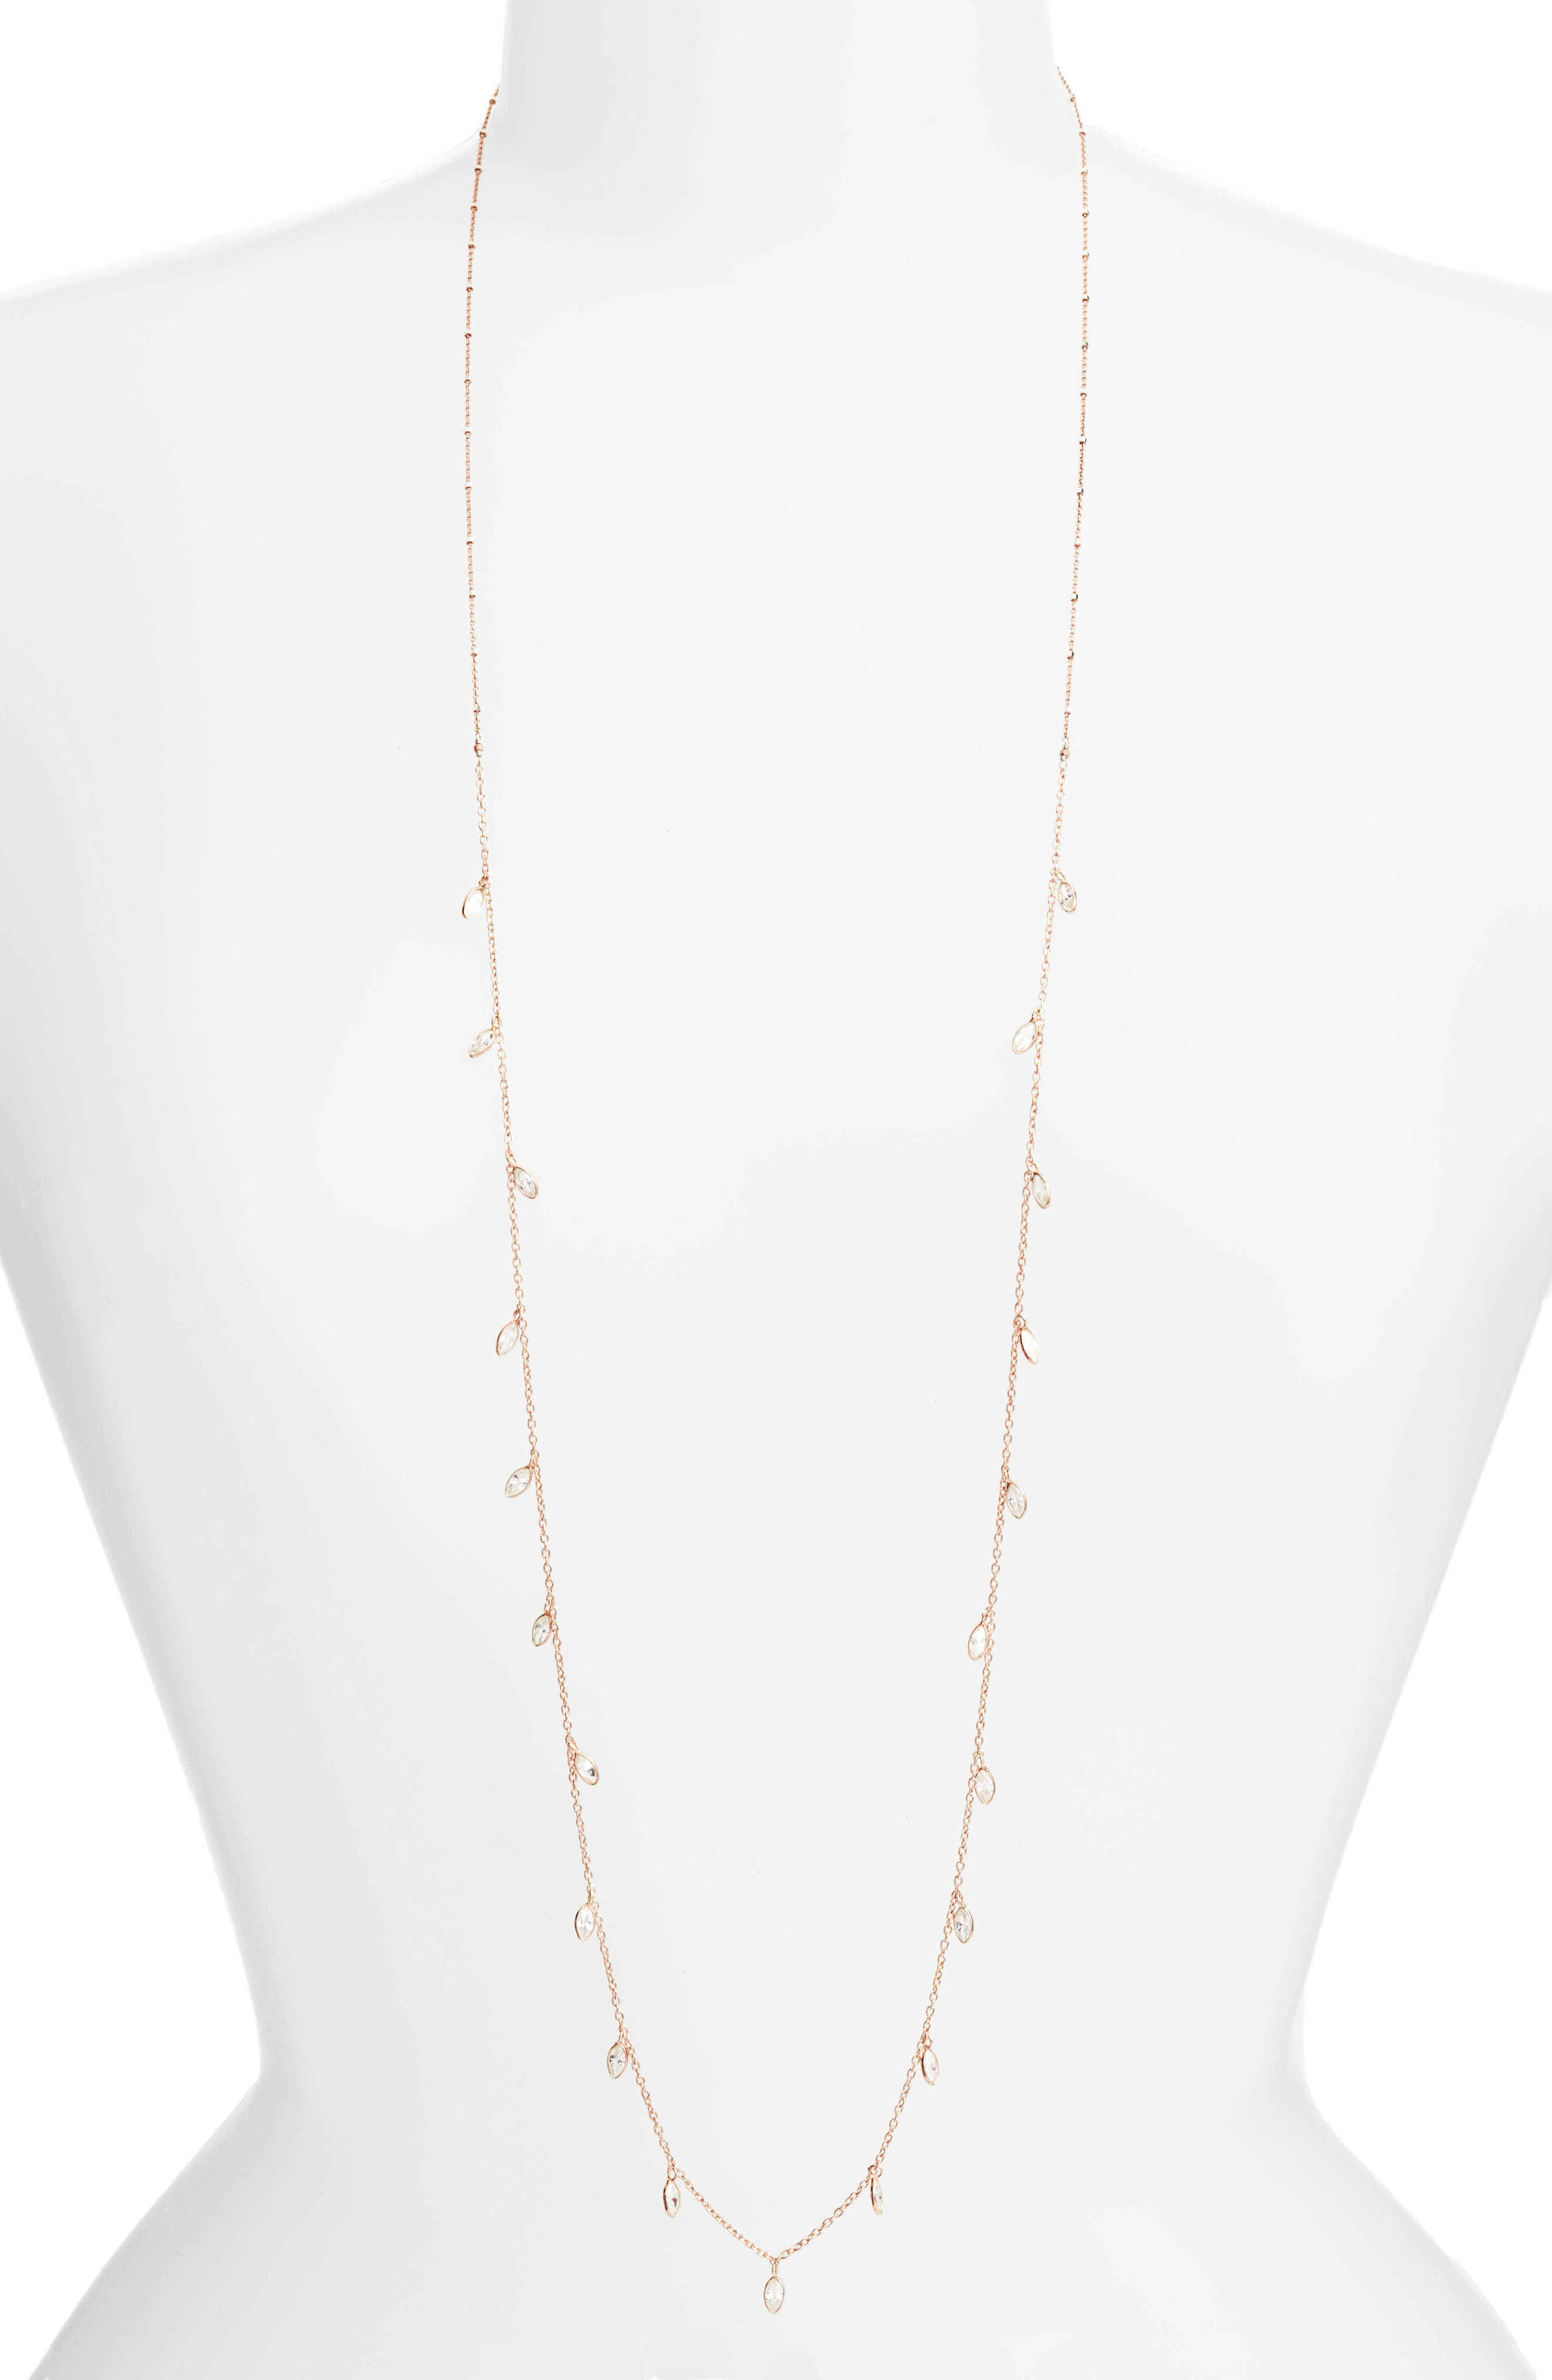 Alternate Image 1 Selected - Chan Luu Crystal Long Necklace